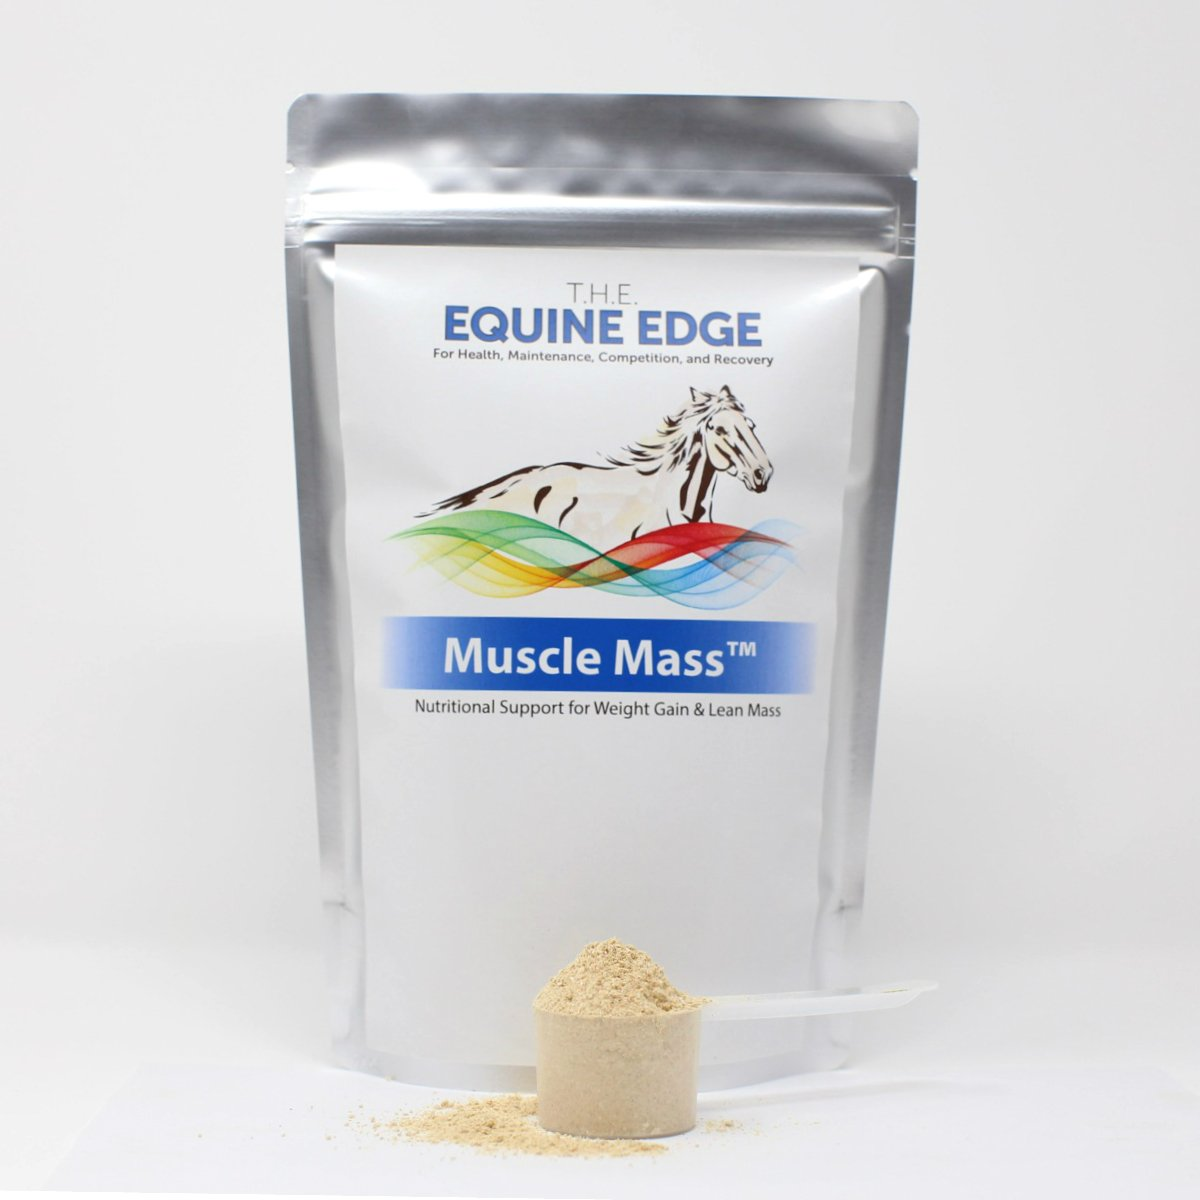 T.H.E. Equine Edge Muscle Mass - Lean Muscle & Weight Gain Supplement, 80 Servings by T.H.E. Equine Edge